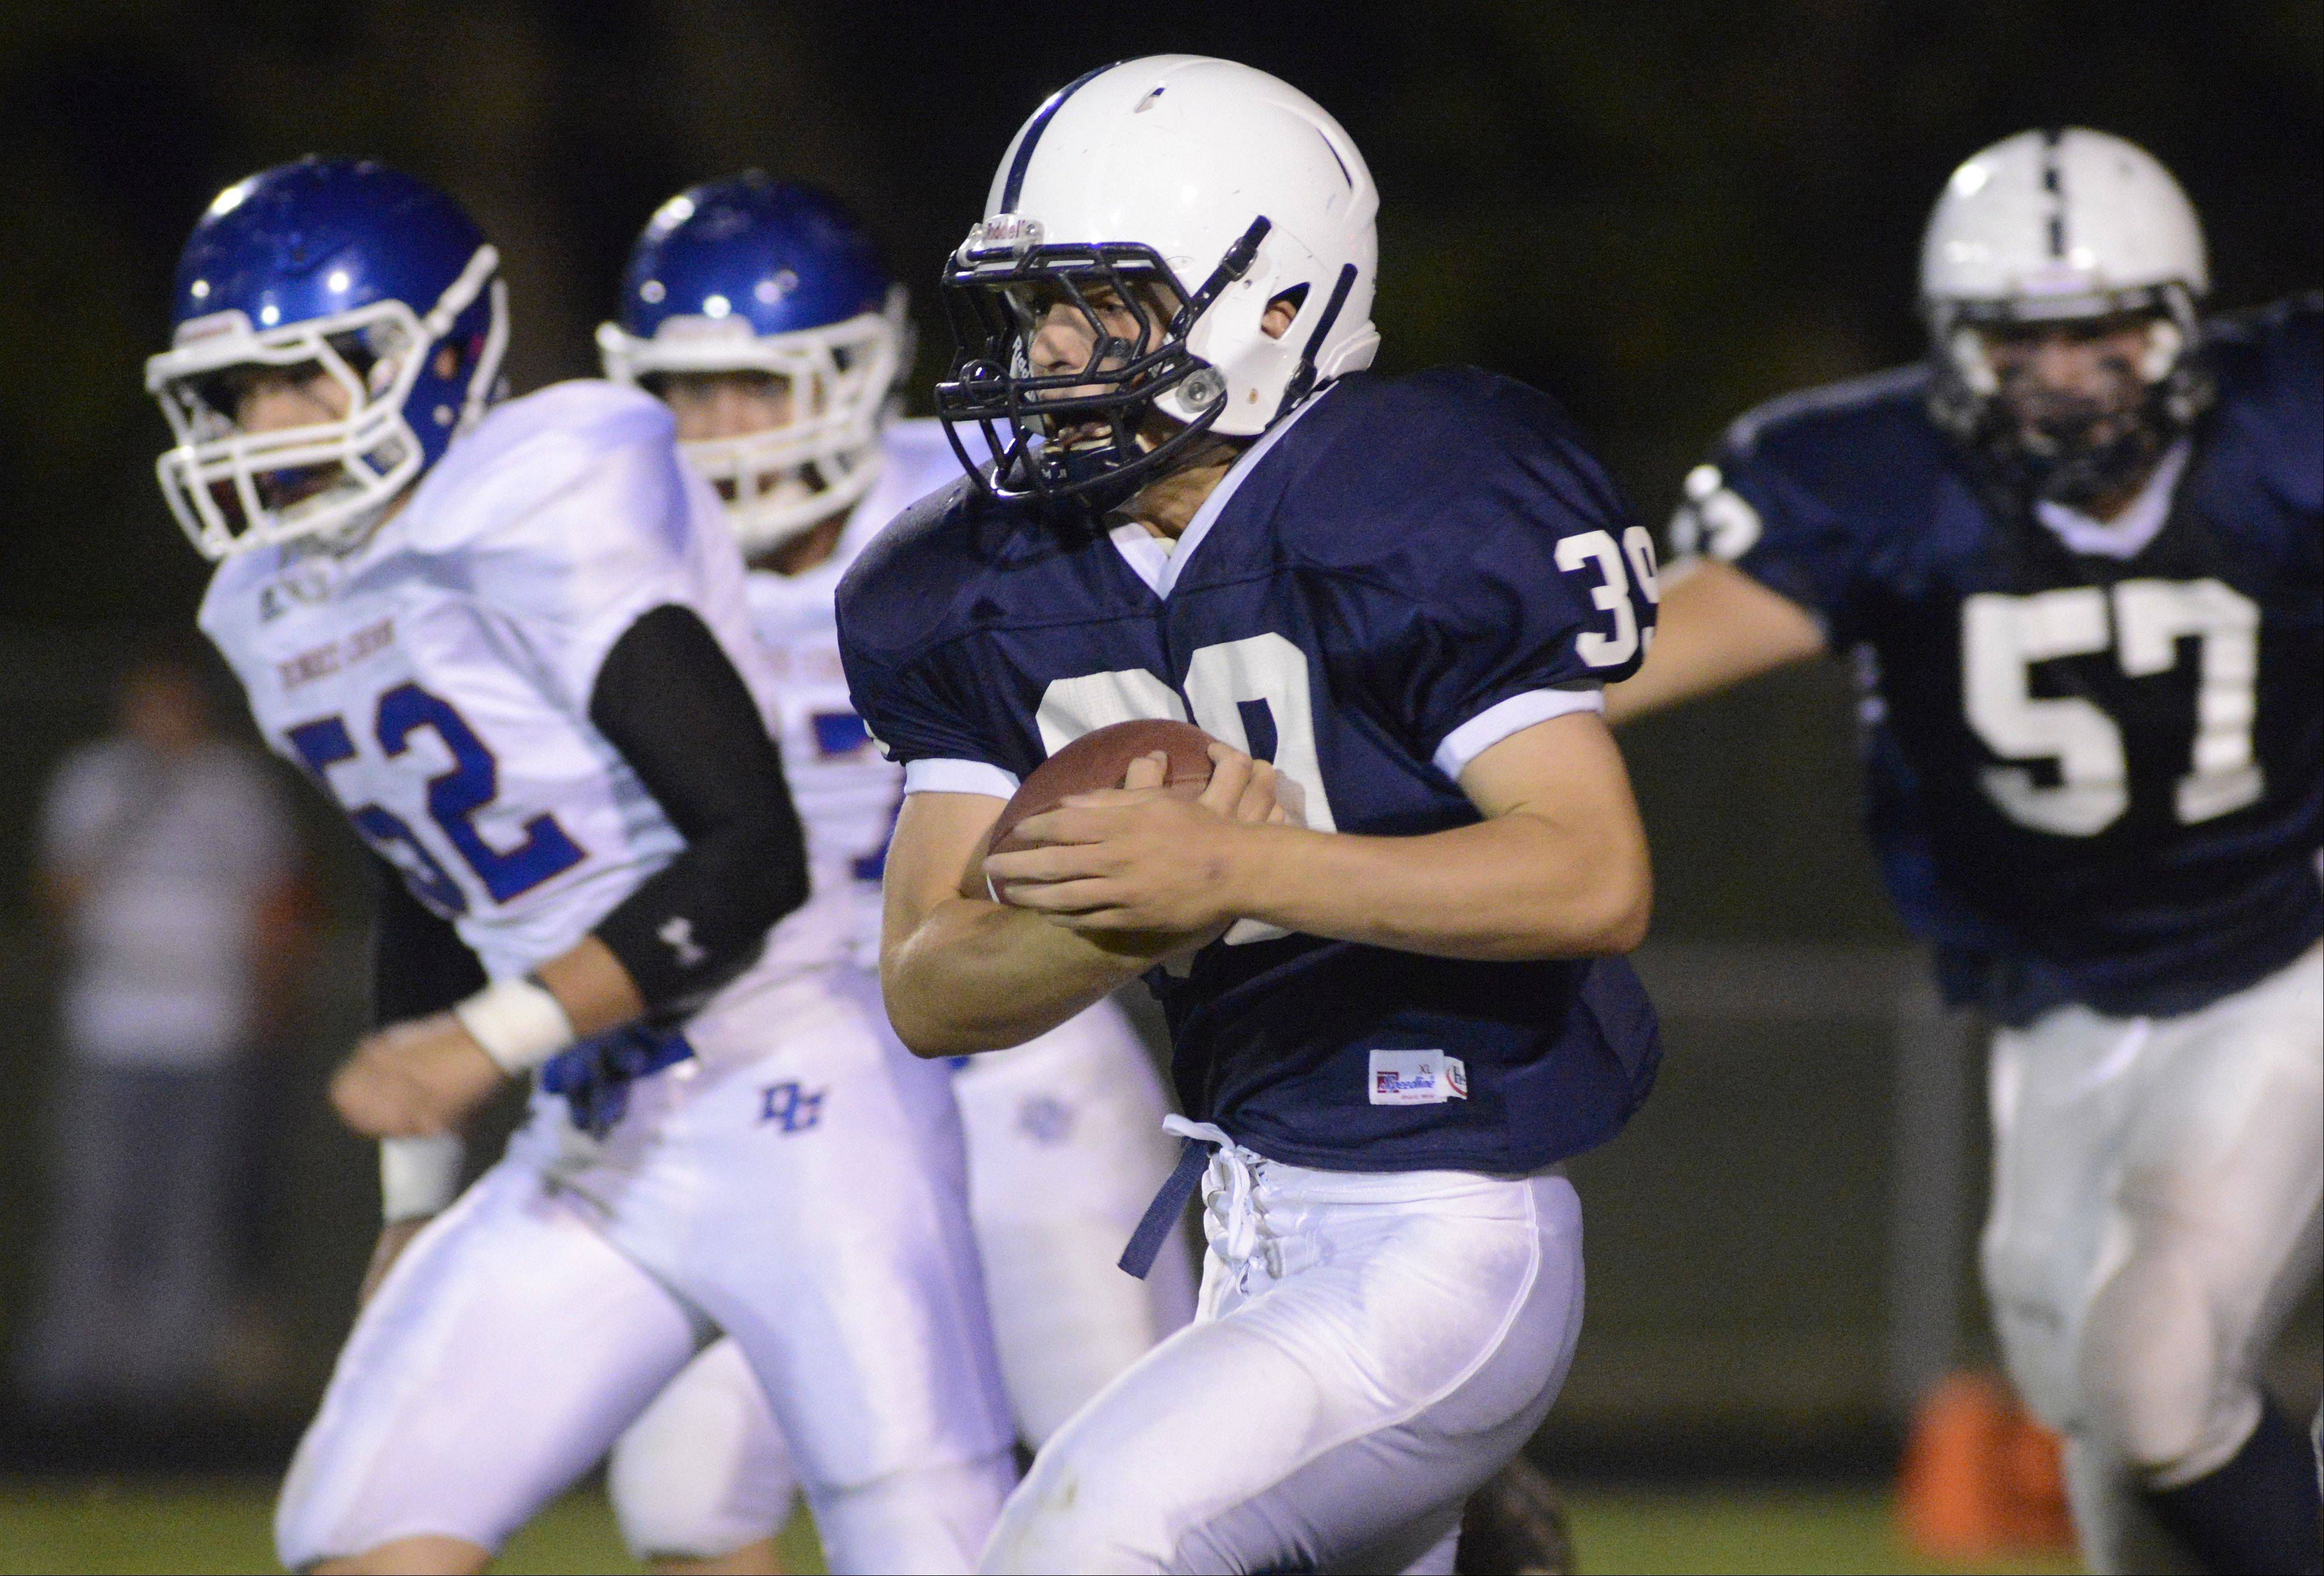 Cary-Grove's Tyler Pennington makes his way downfield against Dundee-Crown. C-G plays a big FVC Valley game at Jacobs tonight, while Dundee-Crown can clinch its first playoff berth since 1994 with a win at Prairie Ridge.